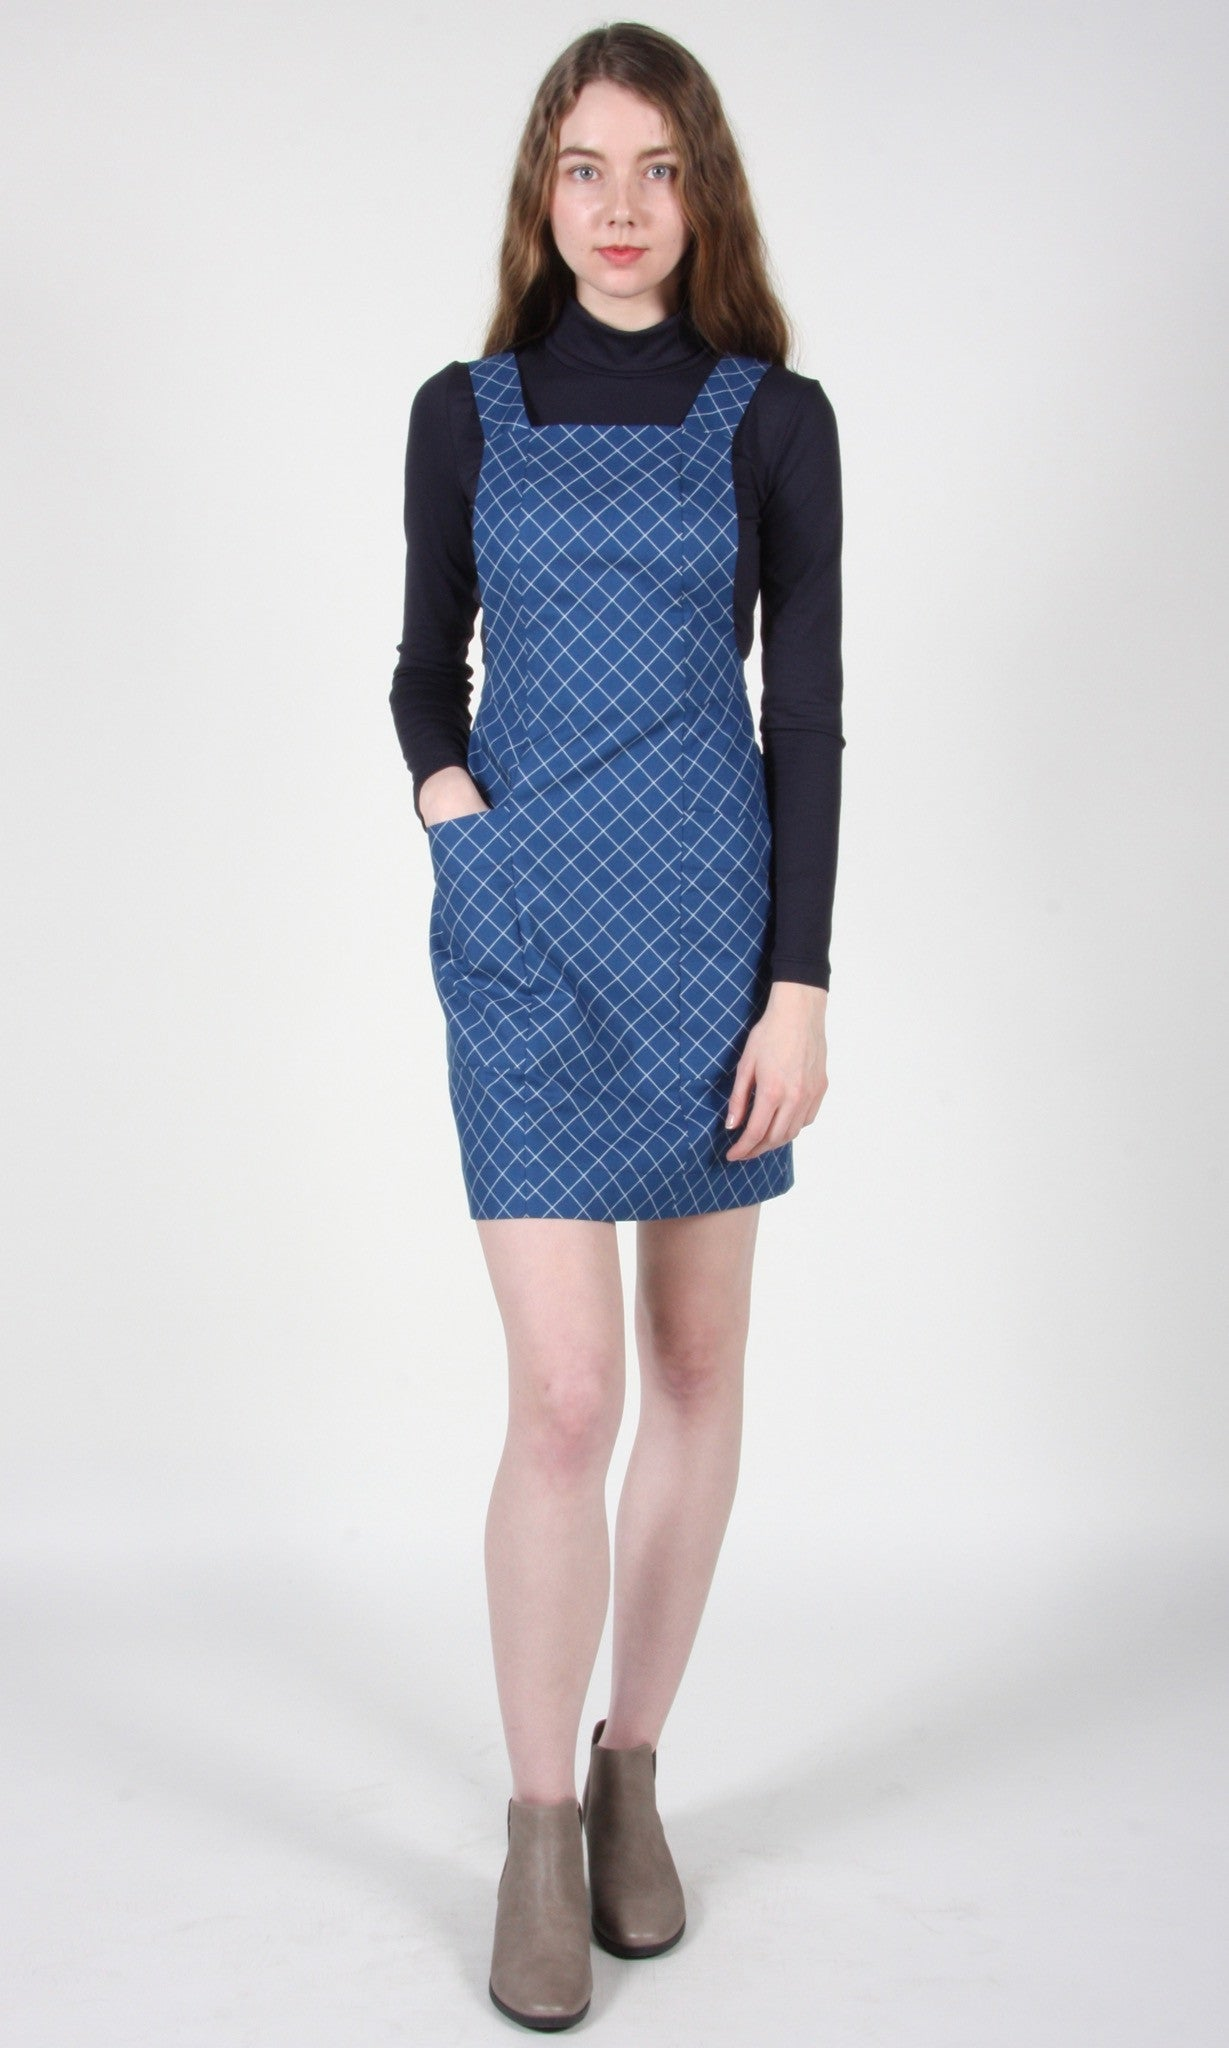 Leiothrix Tunic - Blue Crosshatch